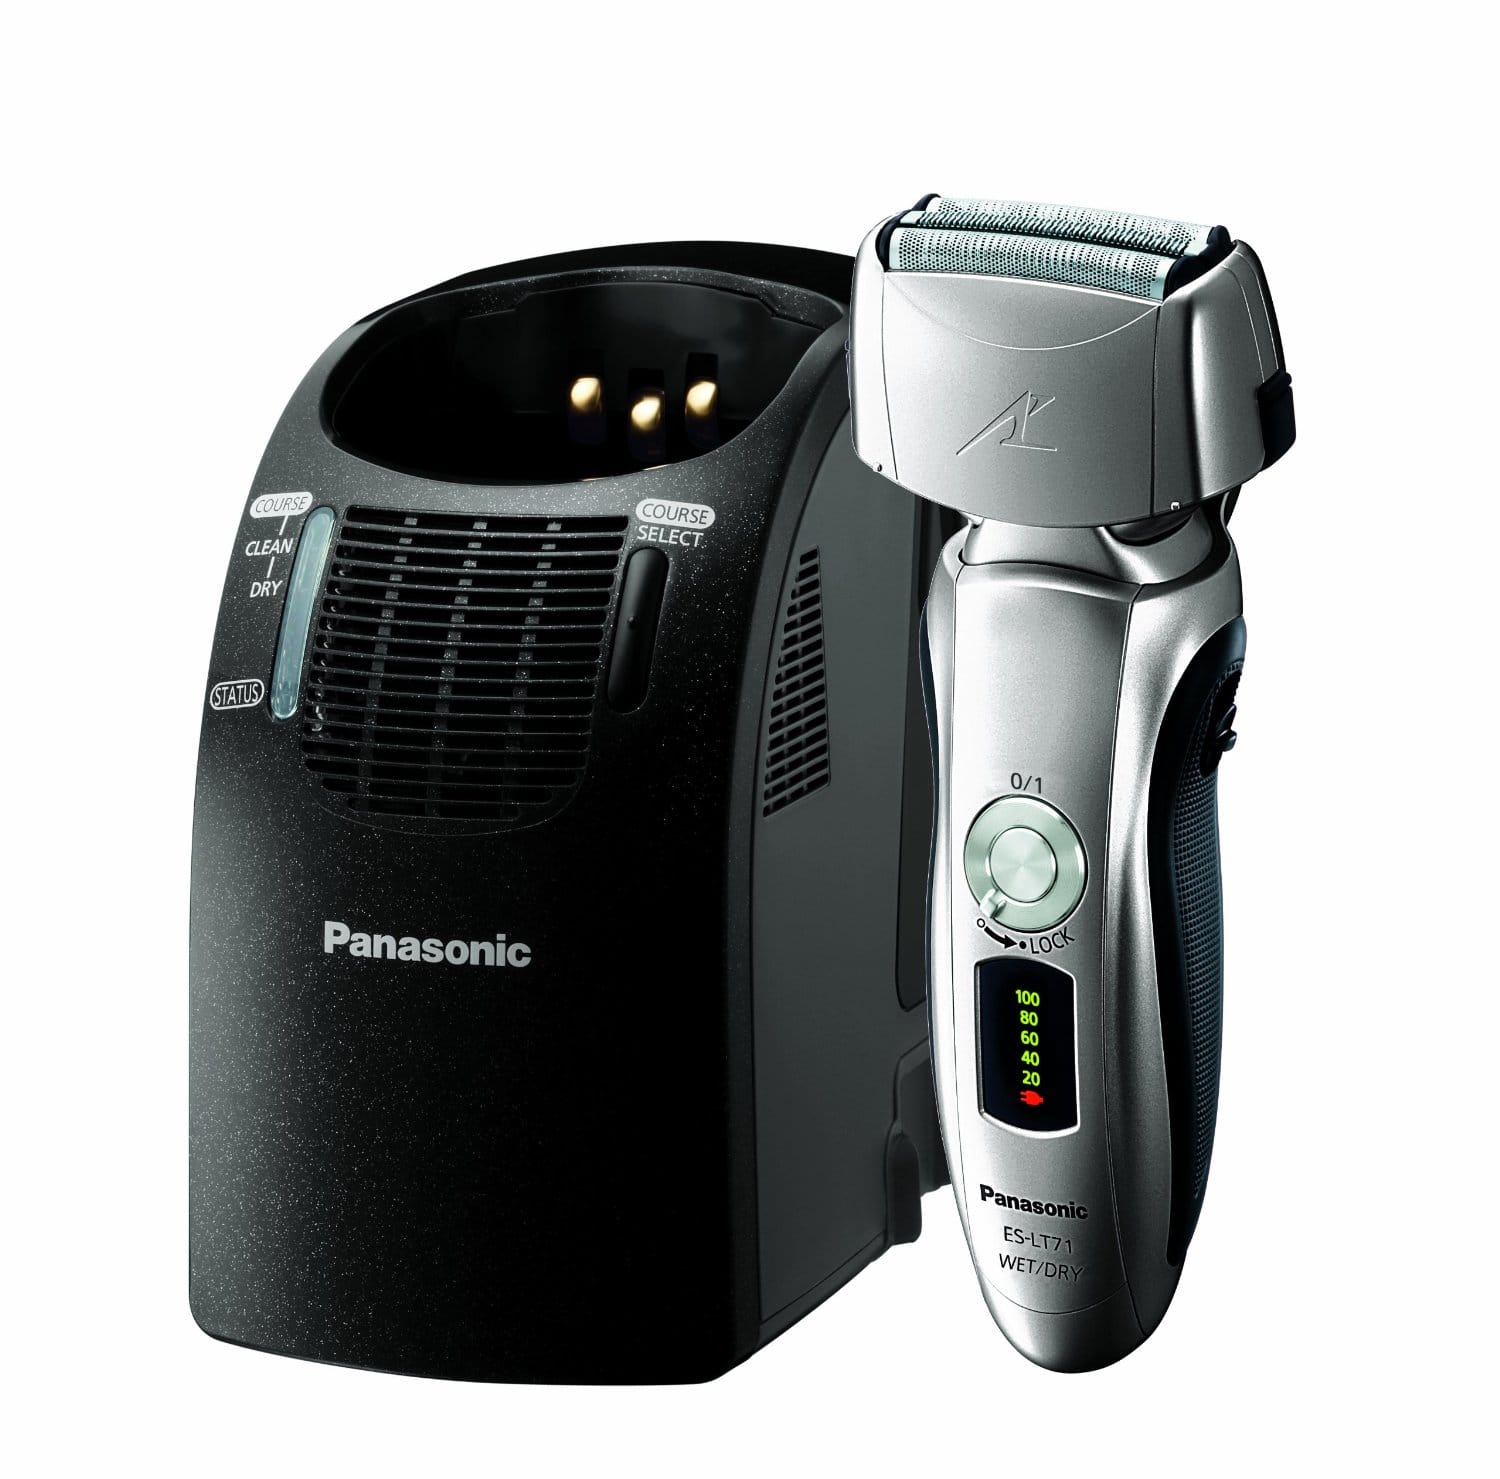 Panasonic: Arc3 3-Blade Shaver with Auto Cleaner (ES-LT71-S) $69.99 Plus Free Shipping